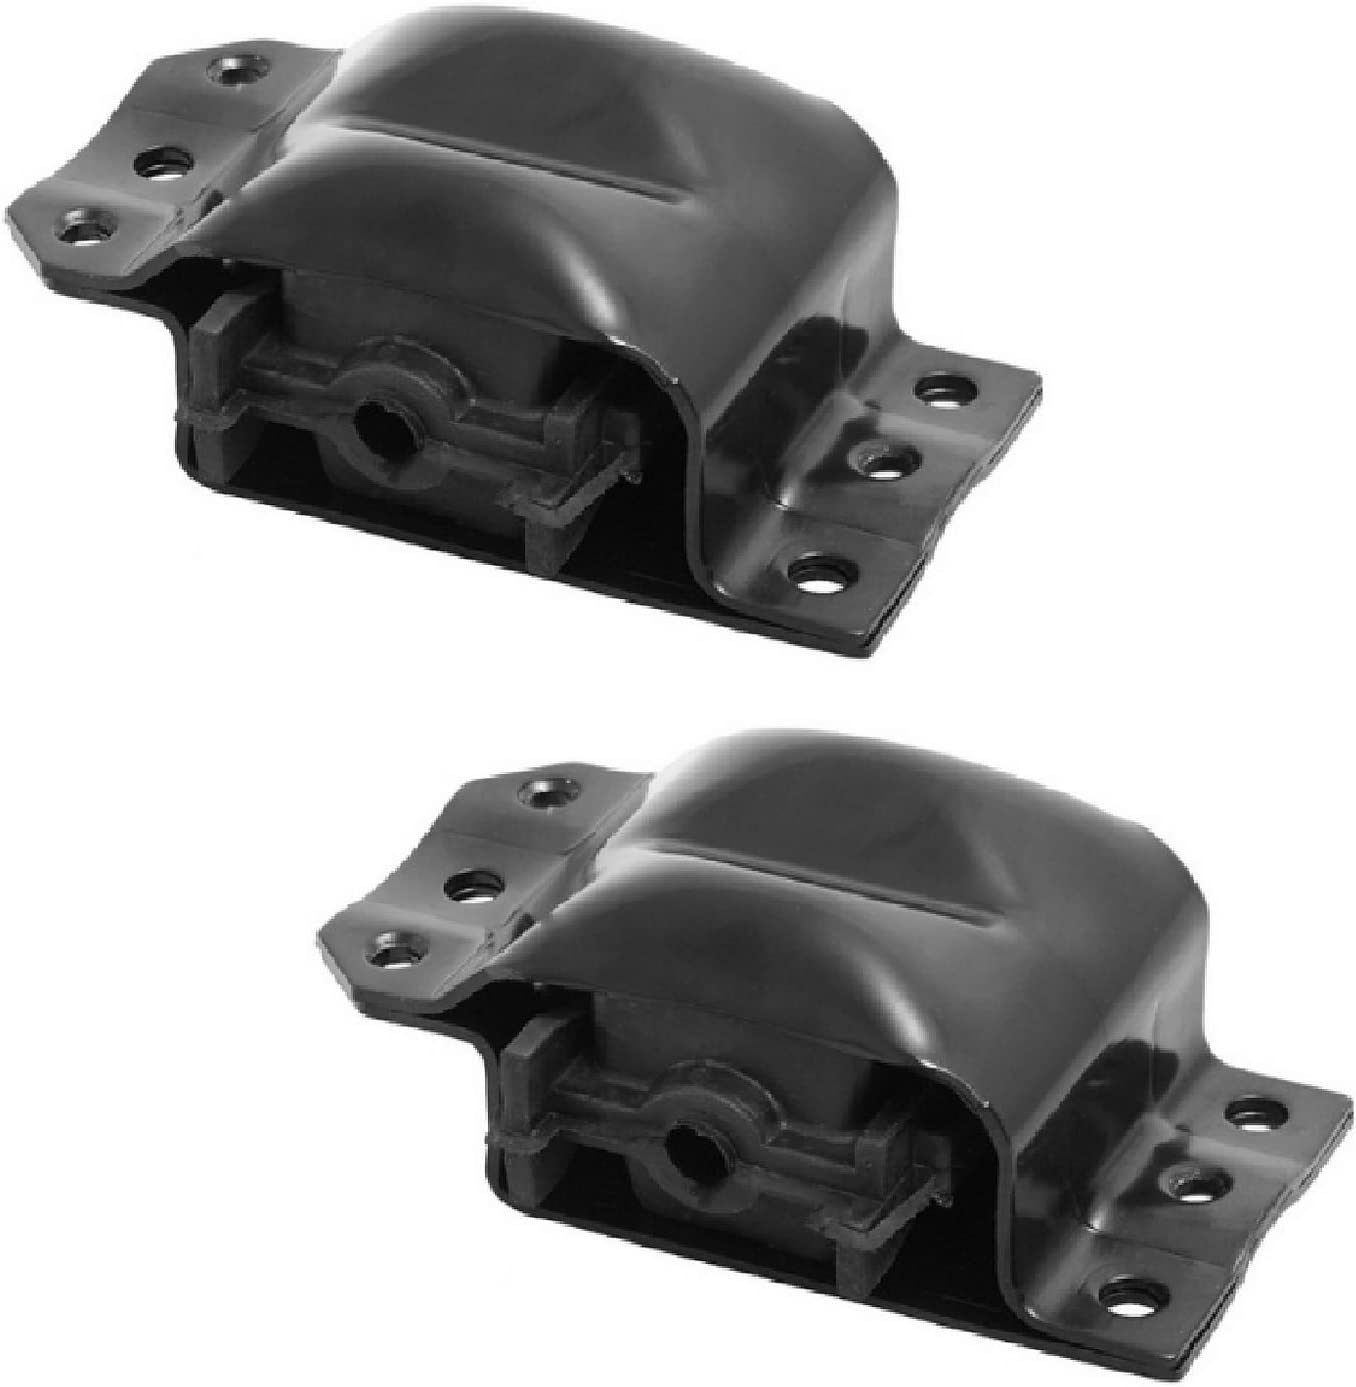 2 PCS FRONT LEFT AND RIGHT MOTOR MOUNT Fit 1988-1994 CHEVROLET Blazer 5.7L 4WD